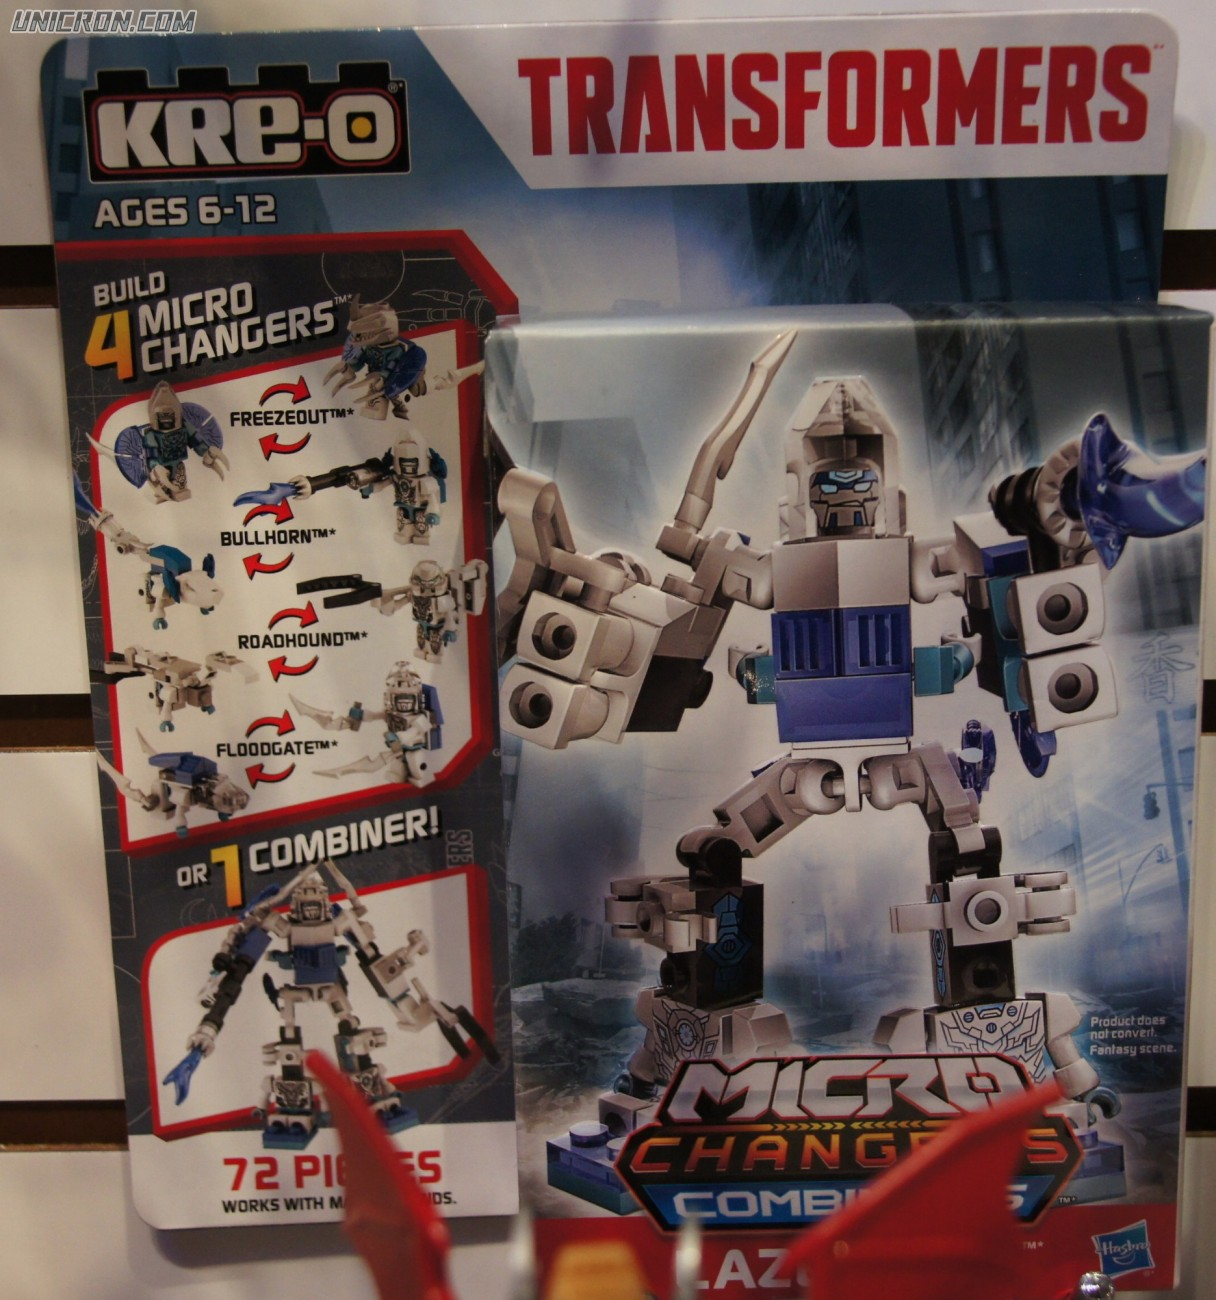 Transformers Kre-O Lazerbolt (Microchanger Combiner with Freezeout, Bullhorn, Roadhound, Floodgate) toy